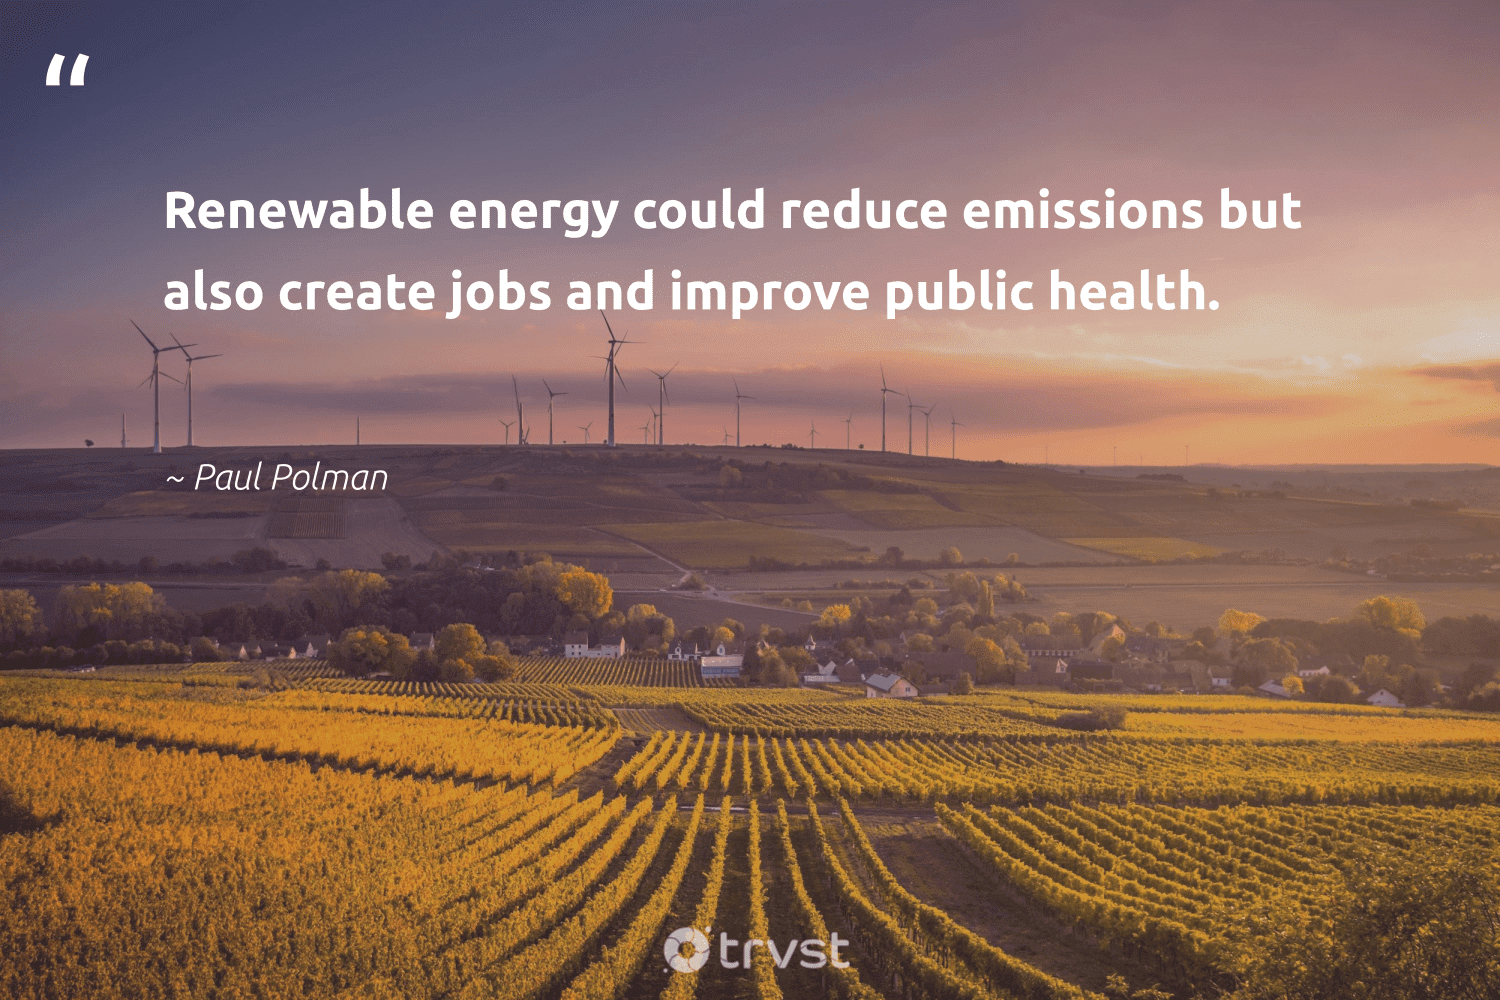 """""""Renewable energy could reduce emissions but also create jobs and improve public health.""""  - Paul Polman #trvst #quotes #renewableenergy #reduce #energy #renewable #health #affordable #recycled #planetearth #sustainability #gogreen"""